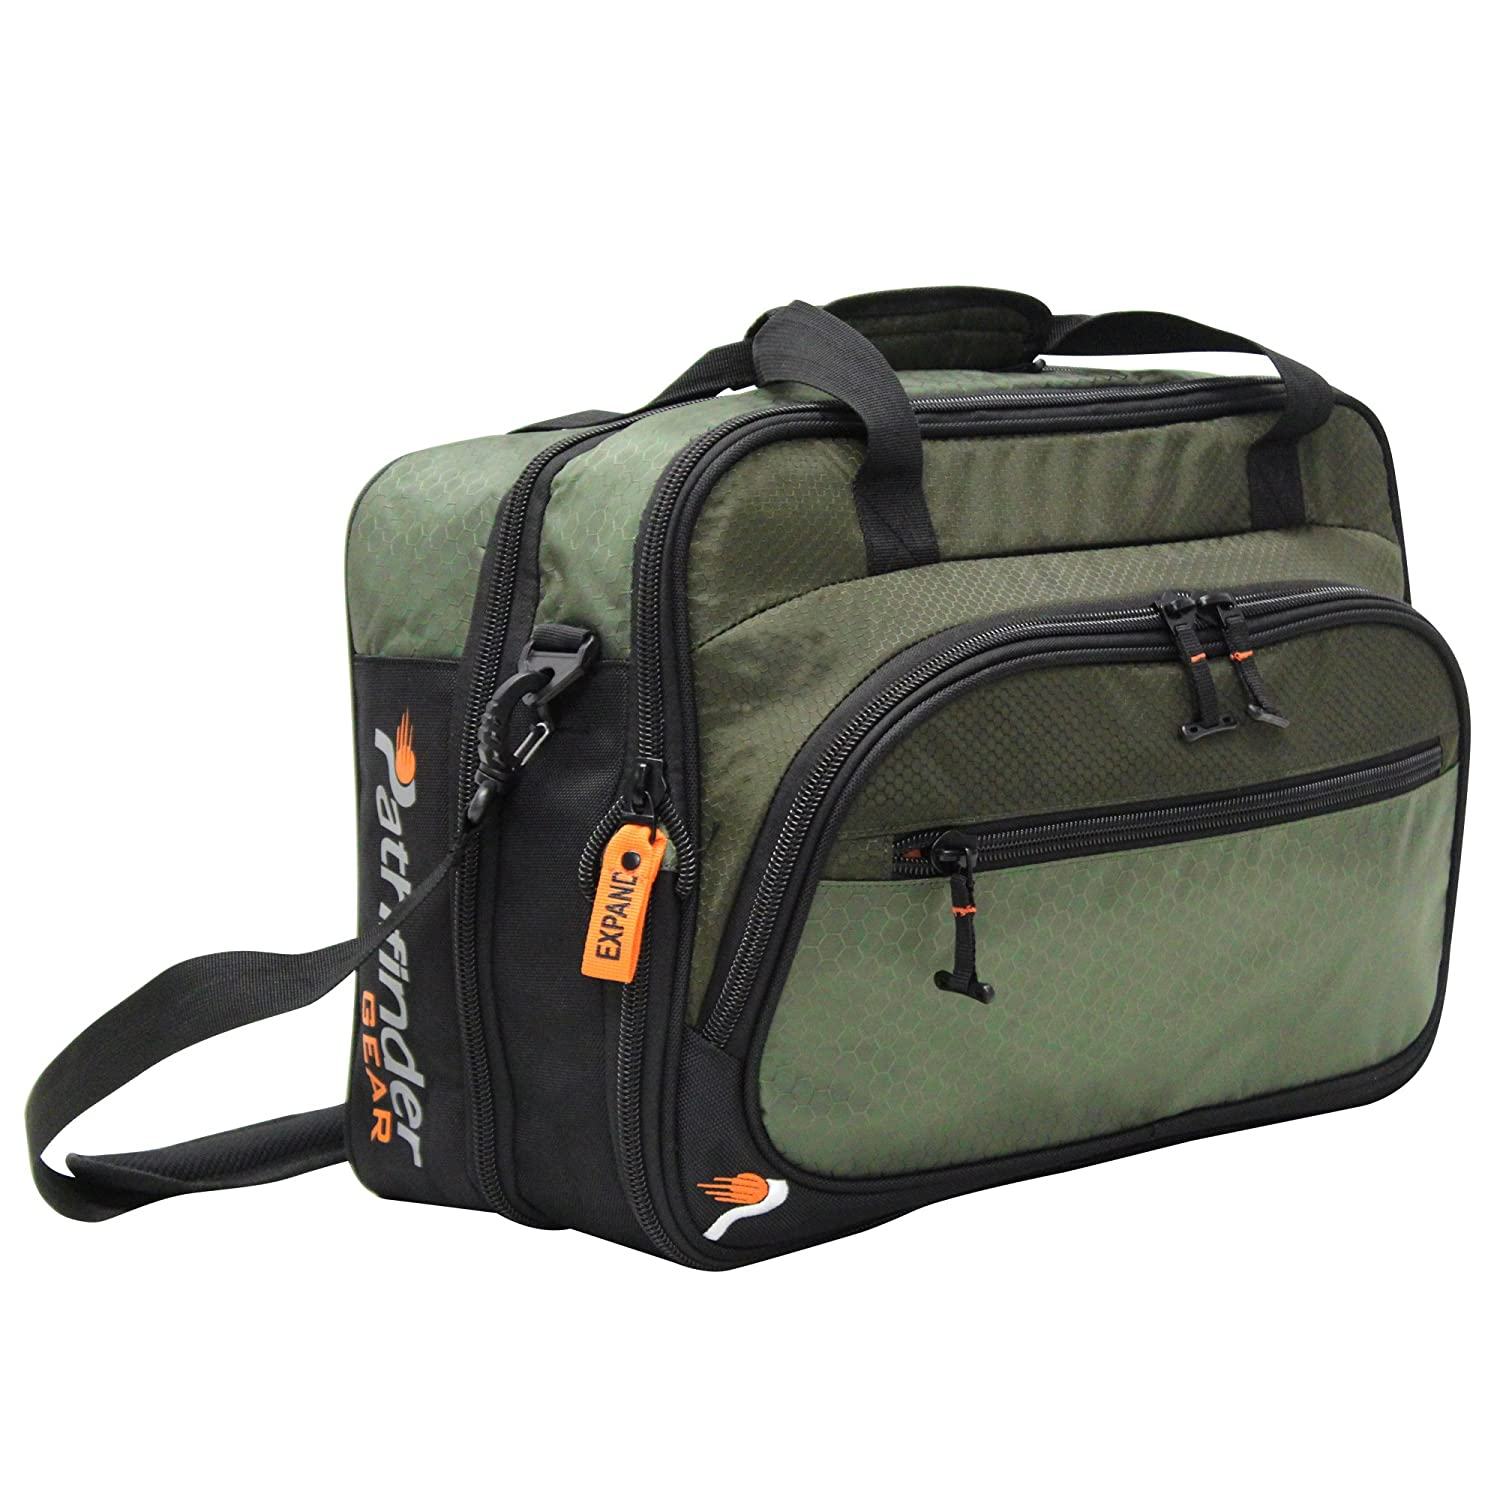 Pathfinder Luggage Gear Gear Convertible 19 Suitcase Carry-On Bag 19in, Olive